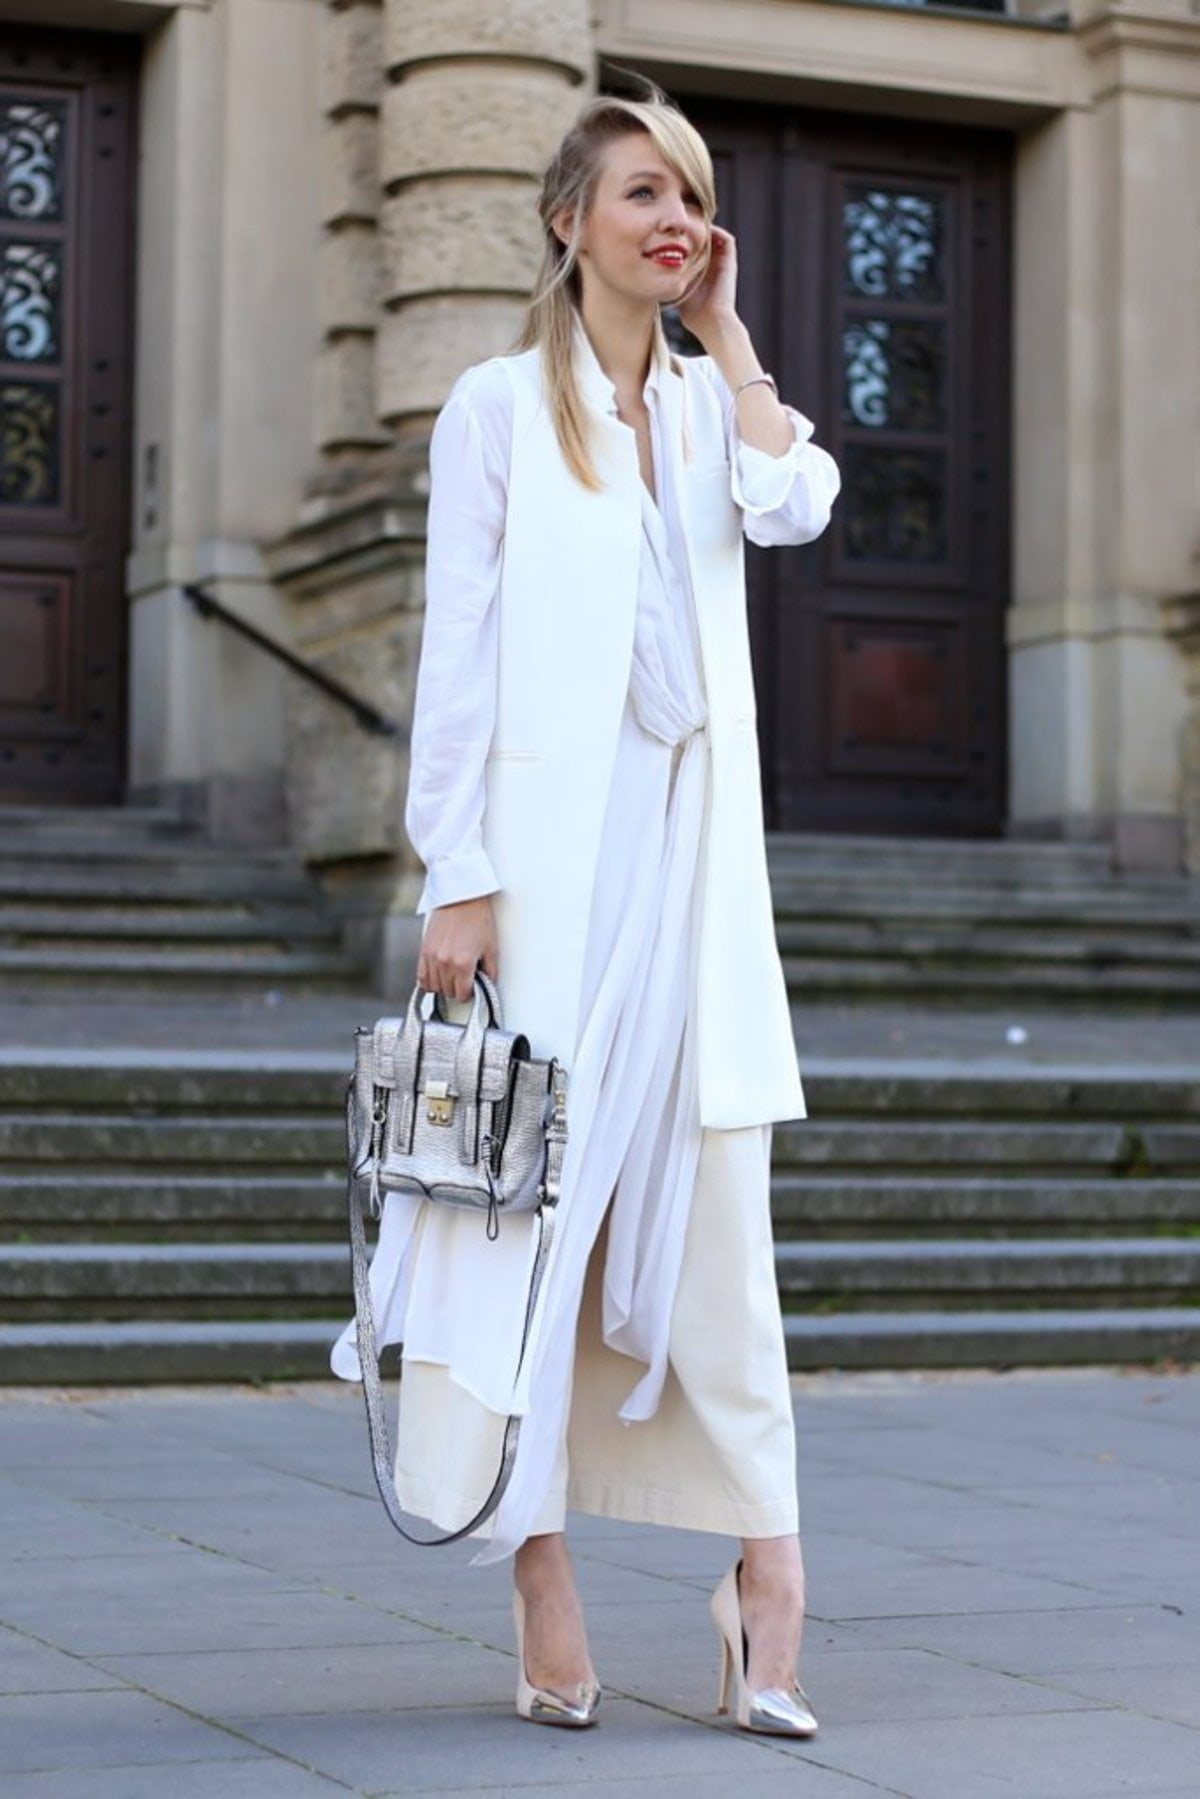 Play-proportions-layering-separates-same-color-different-lengths-silhouettes